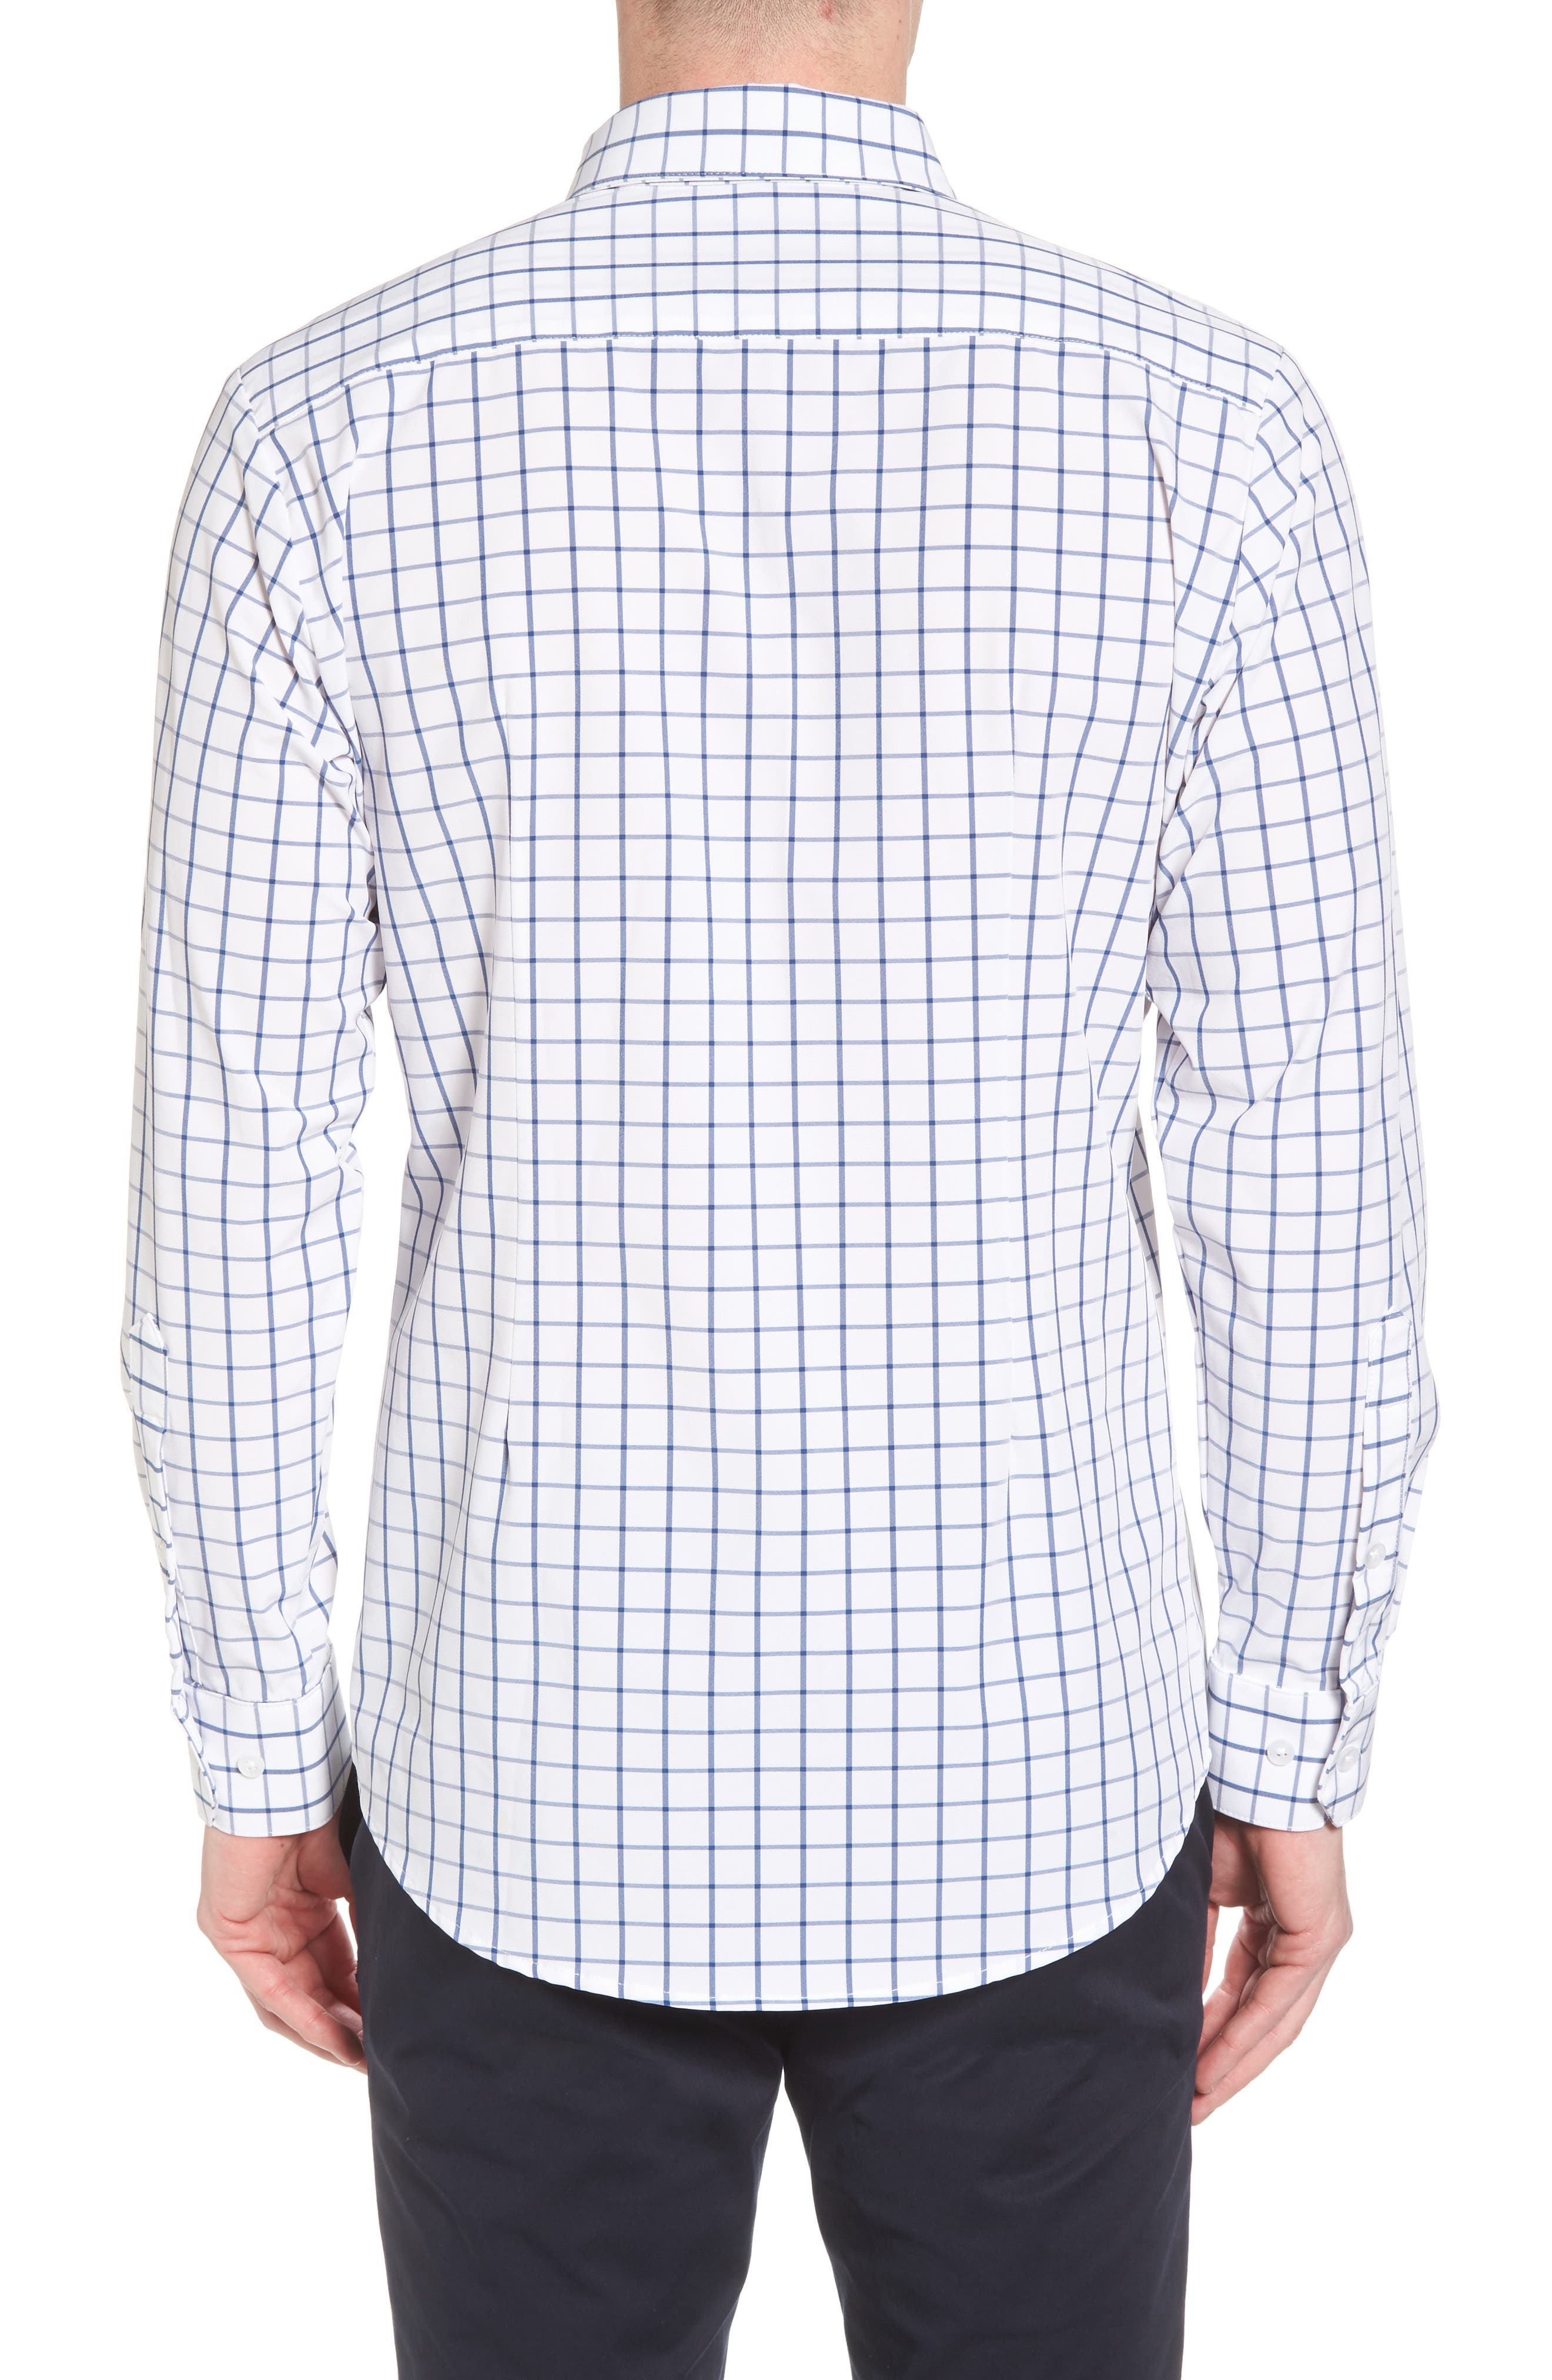 Bowie Windowpane Performance Sport Shirt,                             Alternate thumbnail 3, color,                             Navy